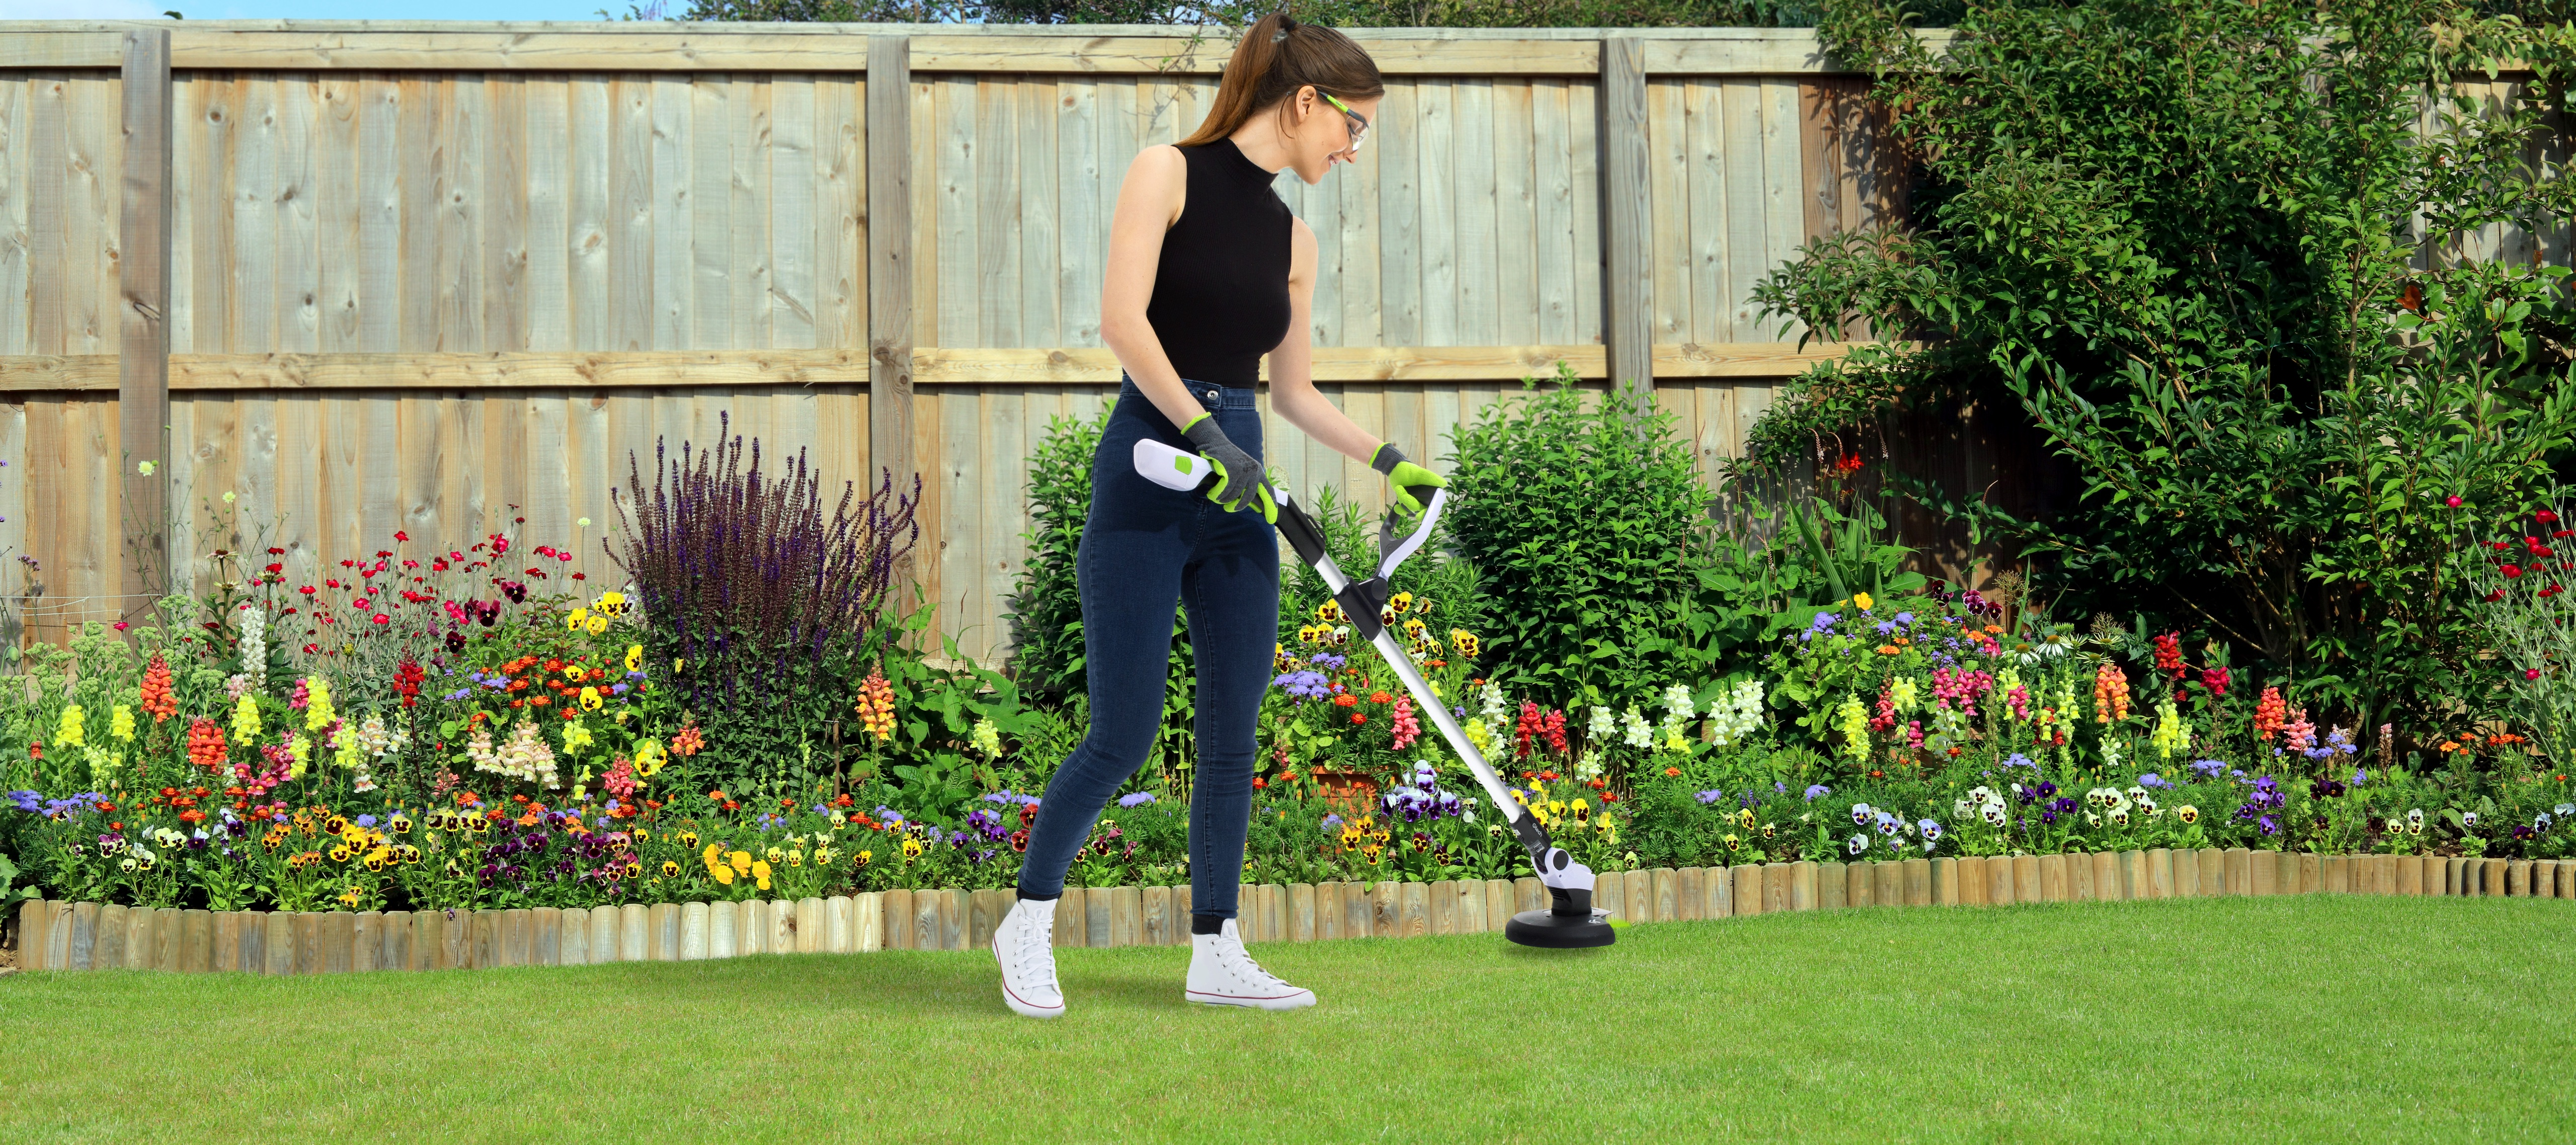 GT50 Trimmer convenient to use